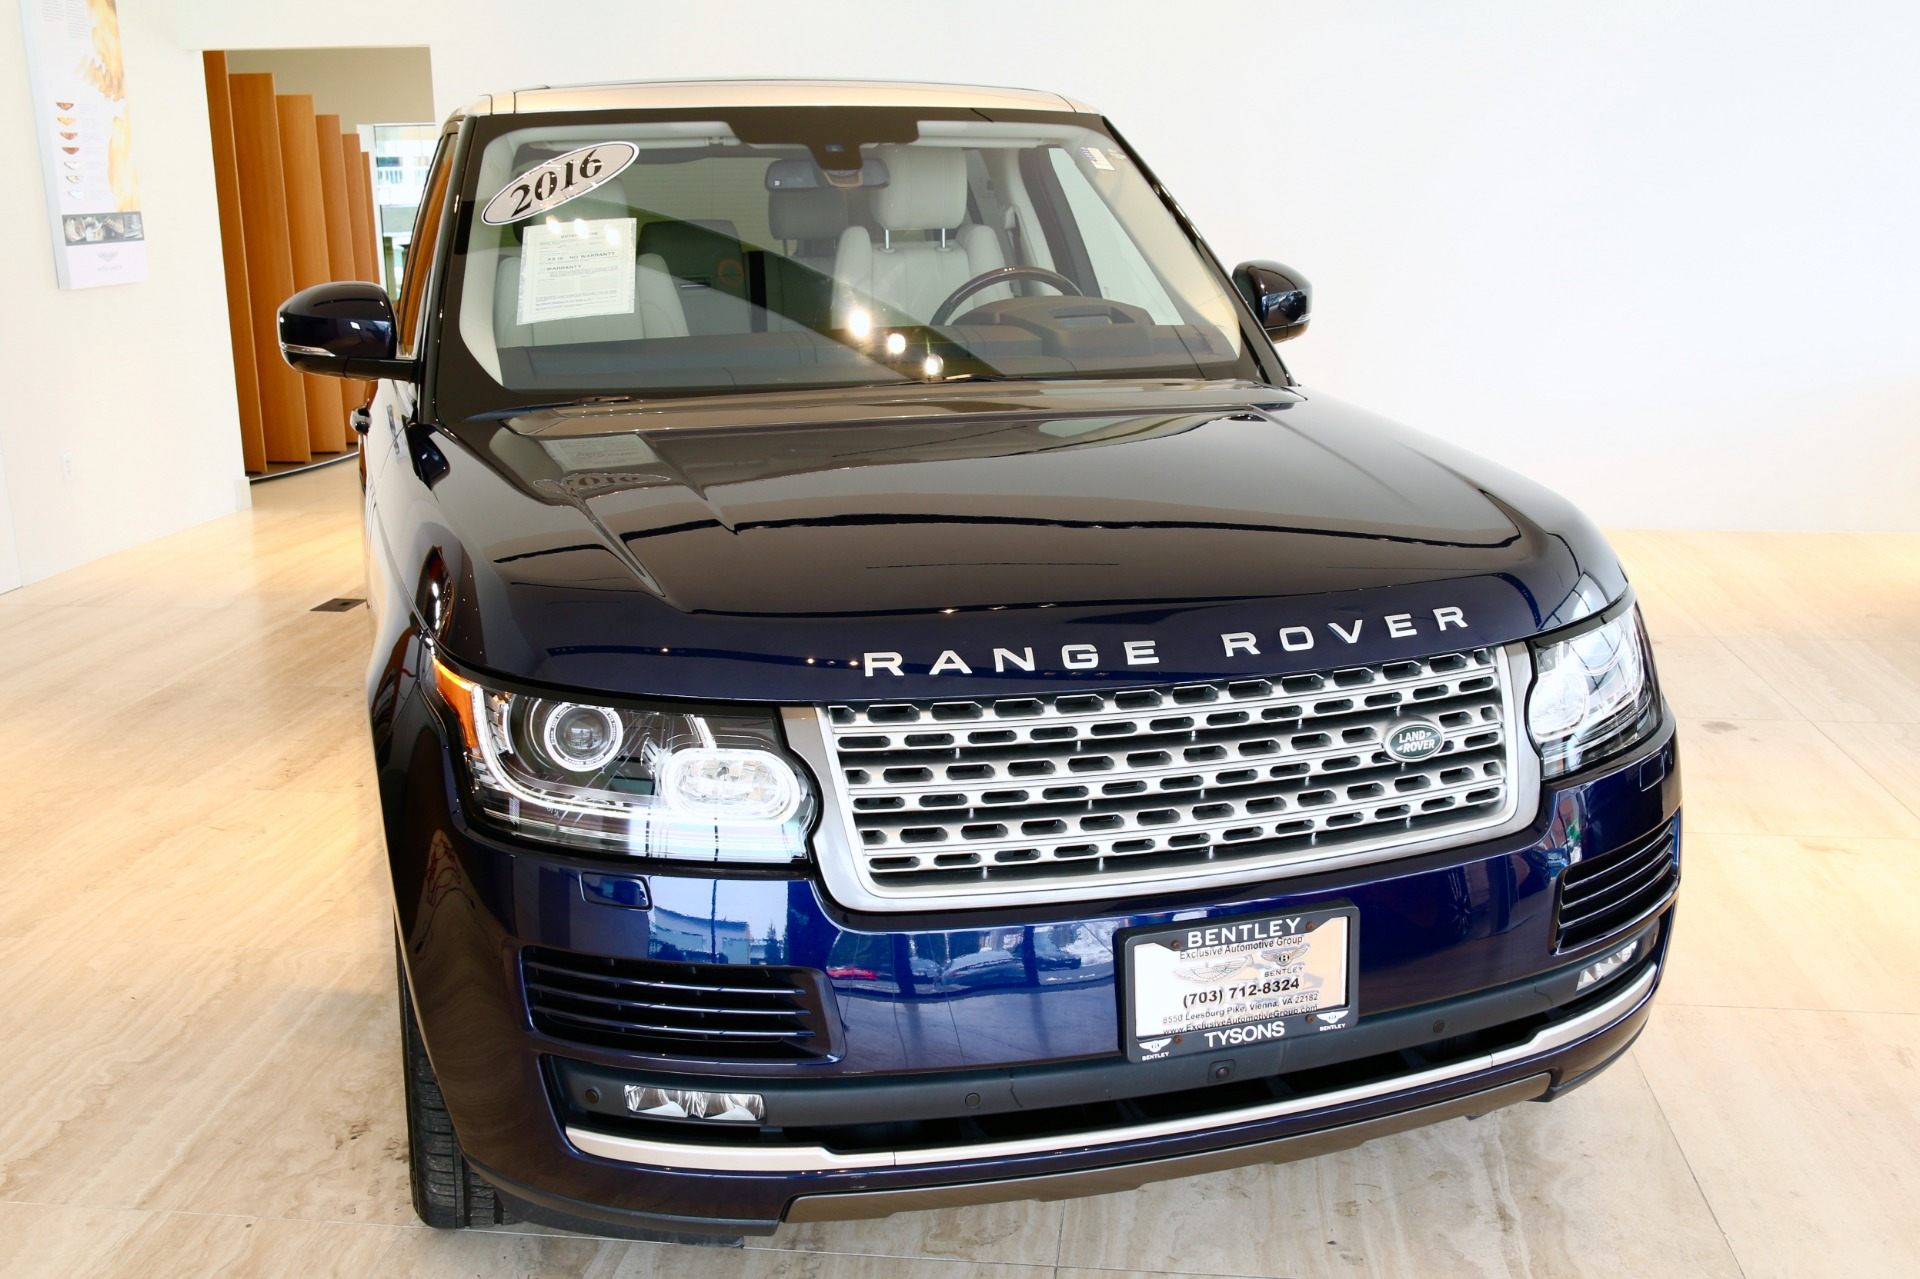 2016 Land Rover Range Rover Supercharged Stock 7NC B for